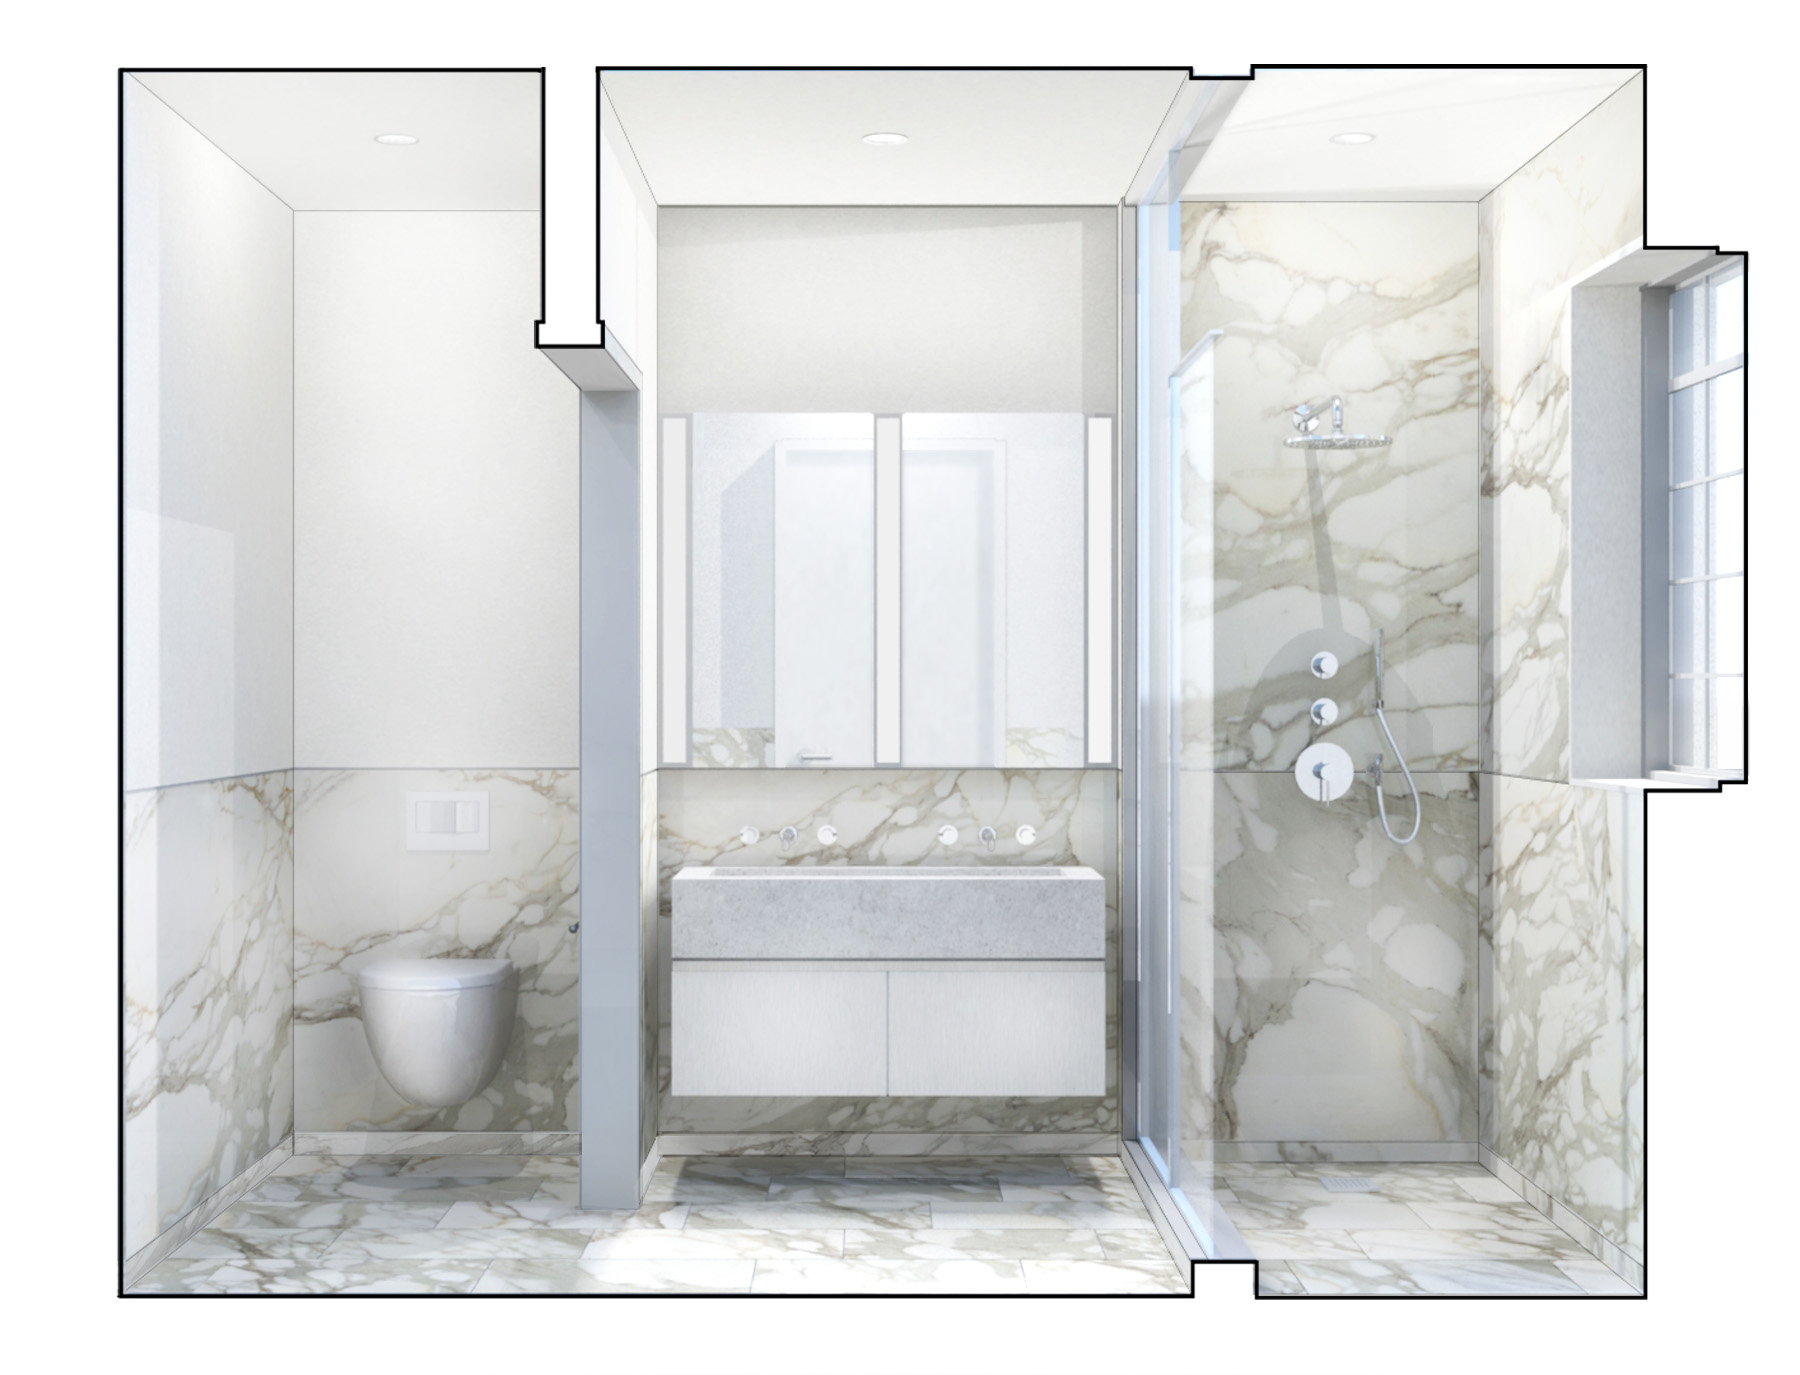 Stadt Architecture, Upper West Side Apartment II, bathroom, floating vanity, concrete, calacatta gold, slab, STADT